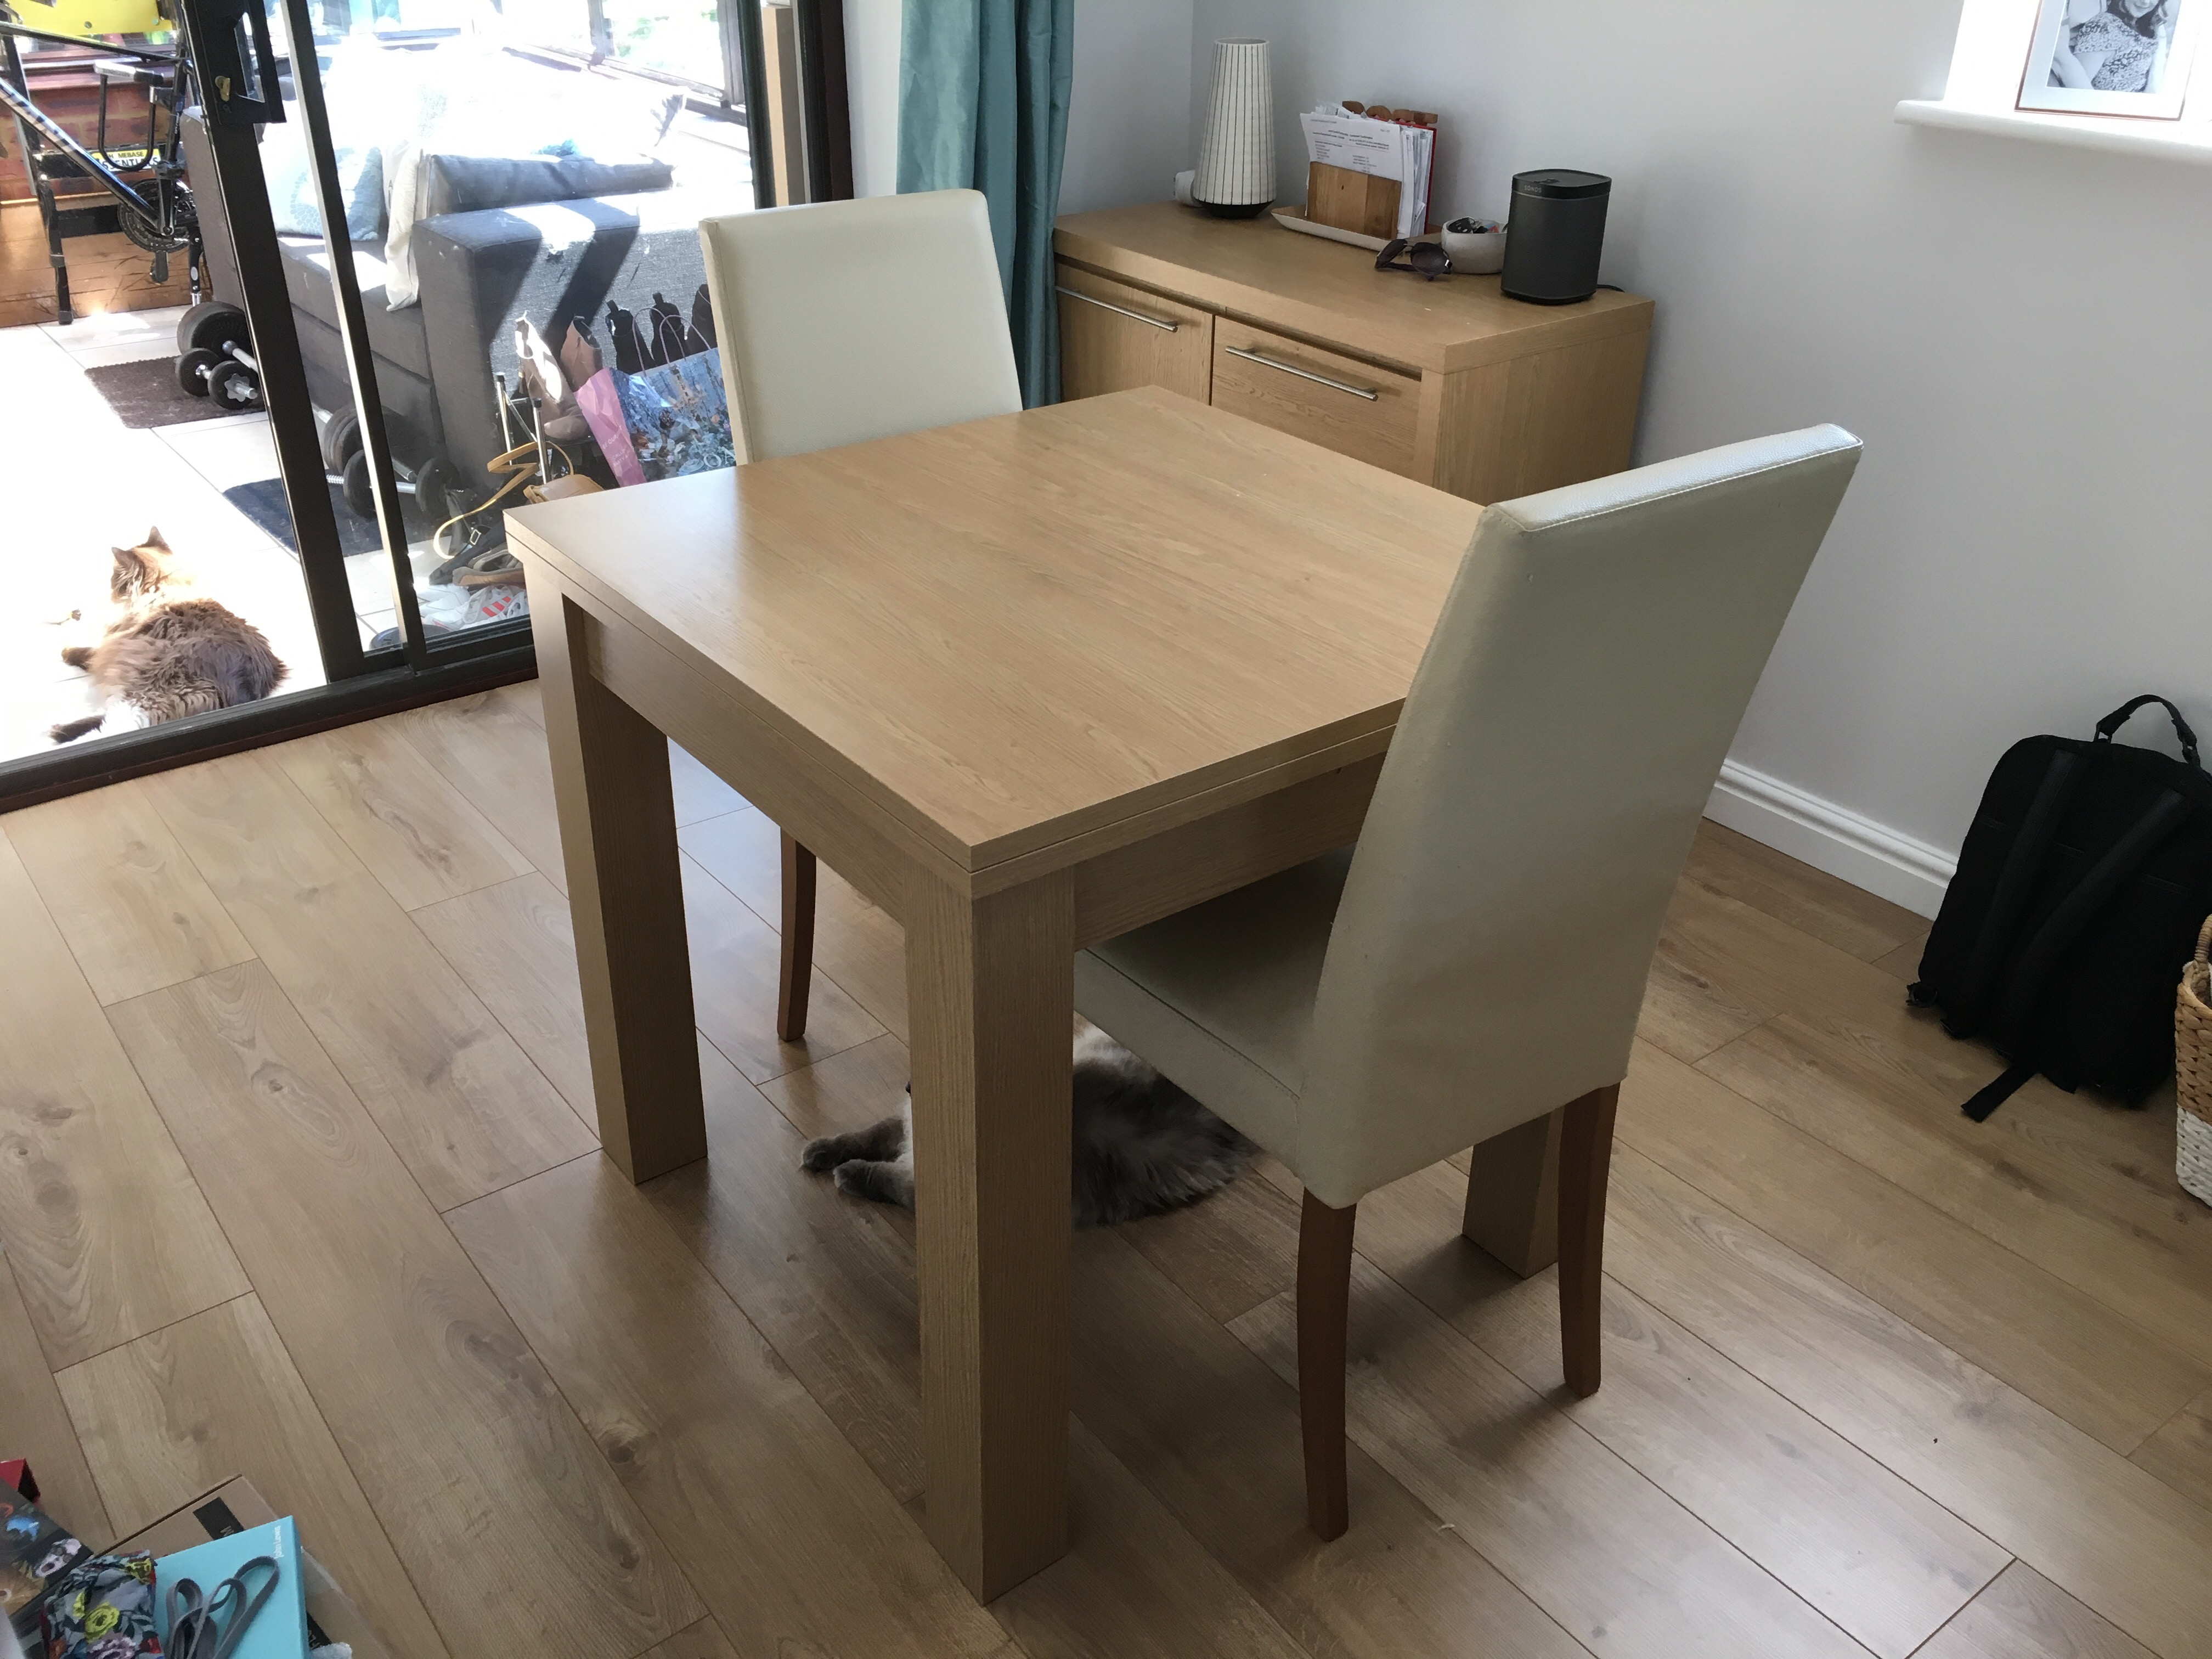 New Dining Furniture From John Lewis Alba Range Review Life Of Man